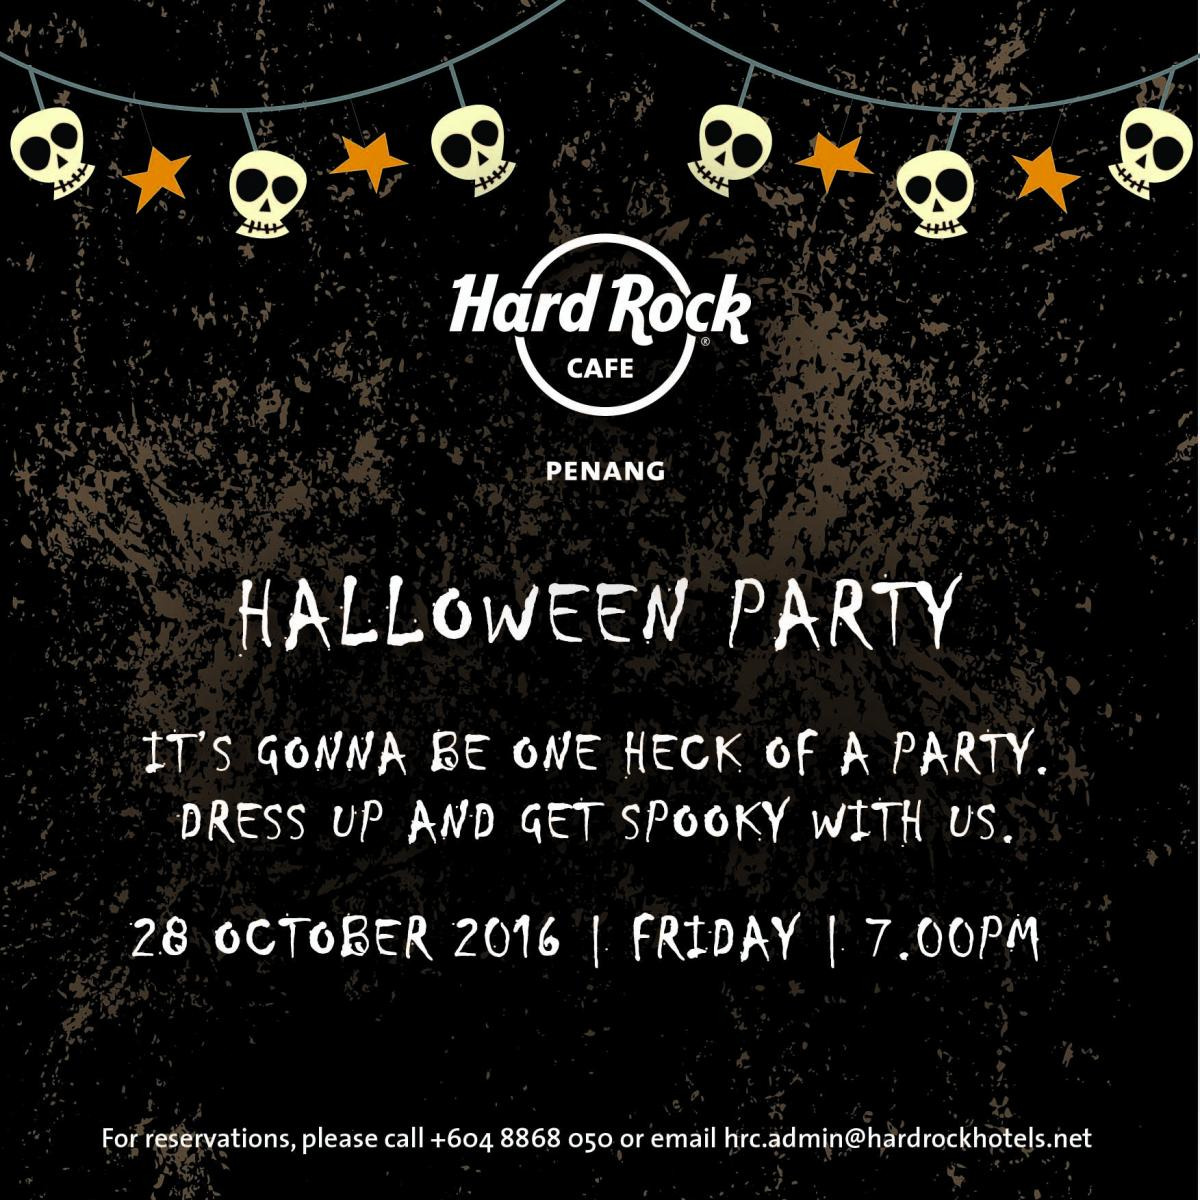 Hard Rock Hotel Penang HALLOWEEN PARTY 2016